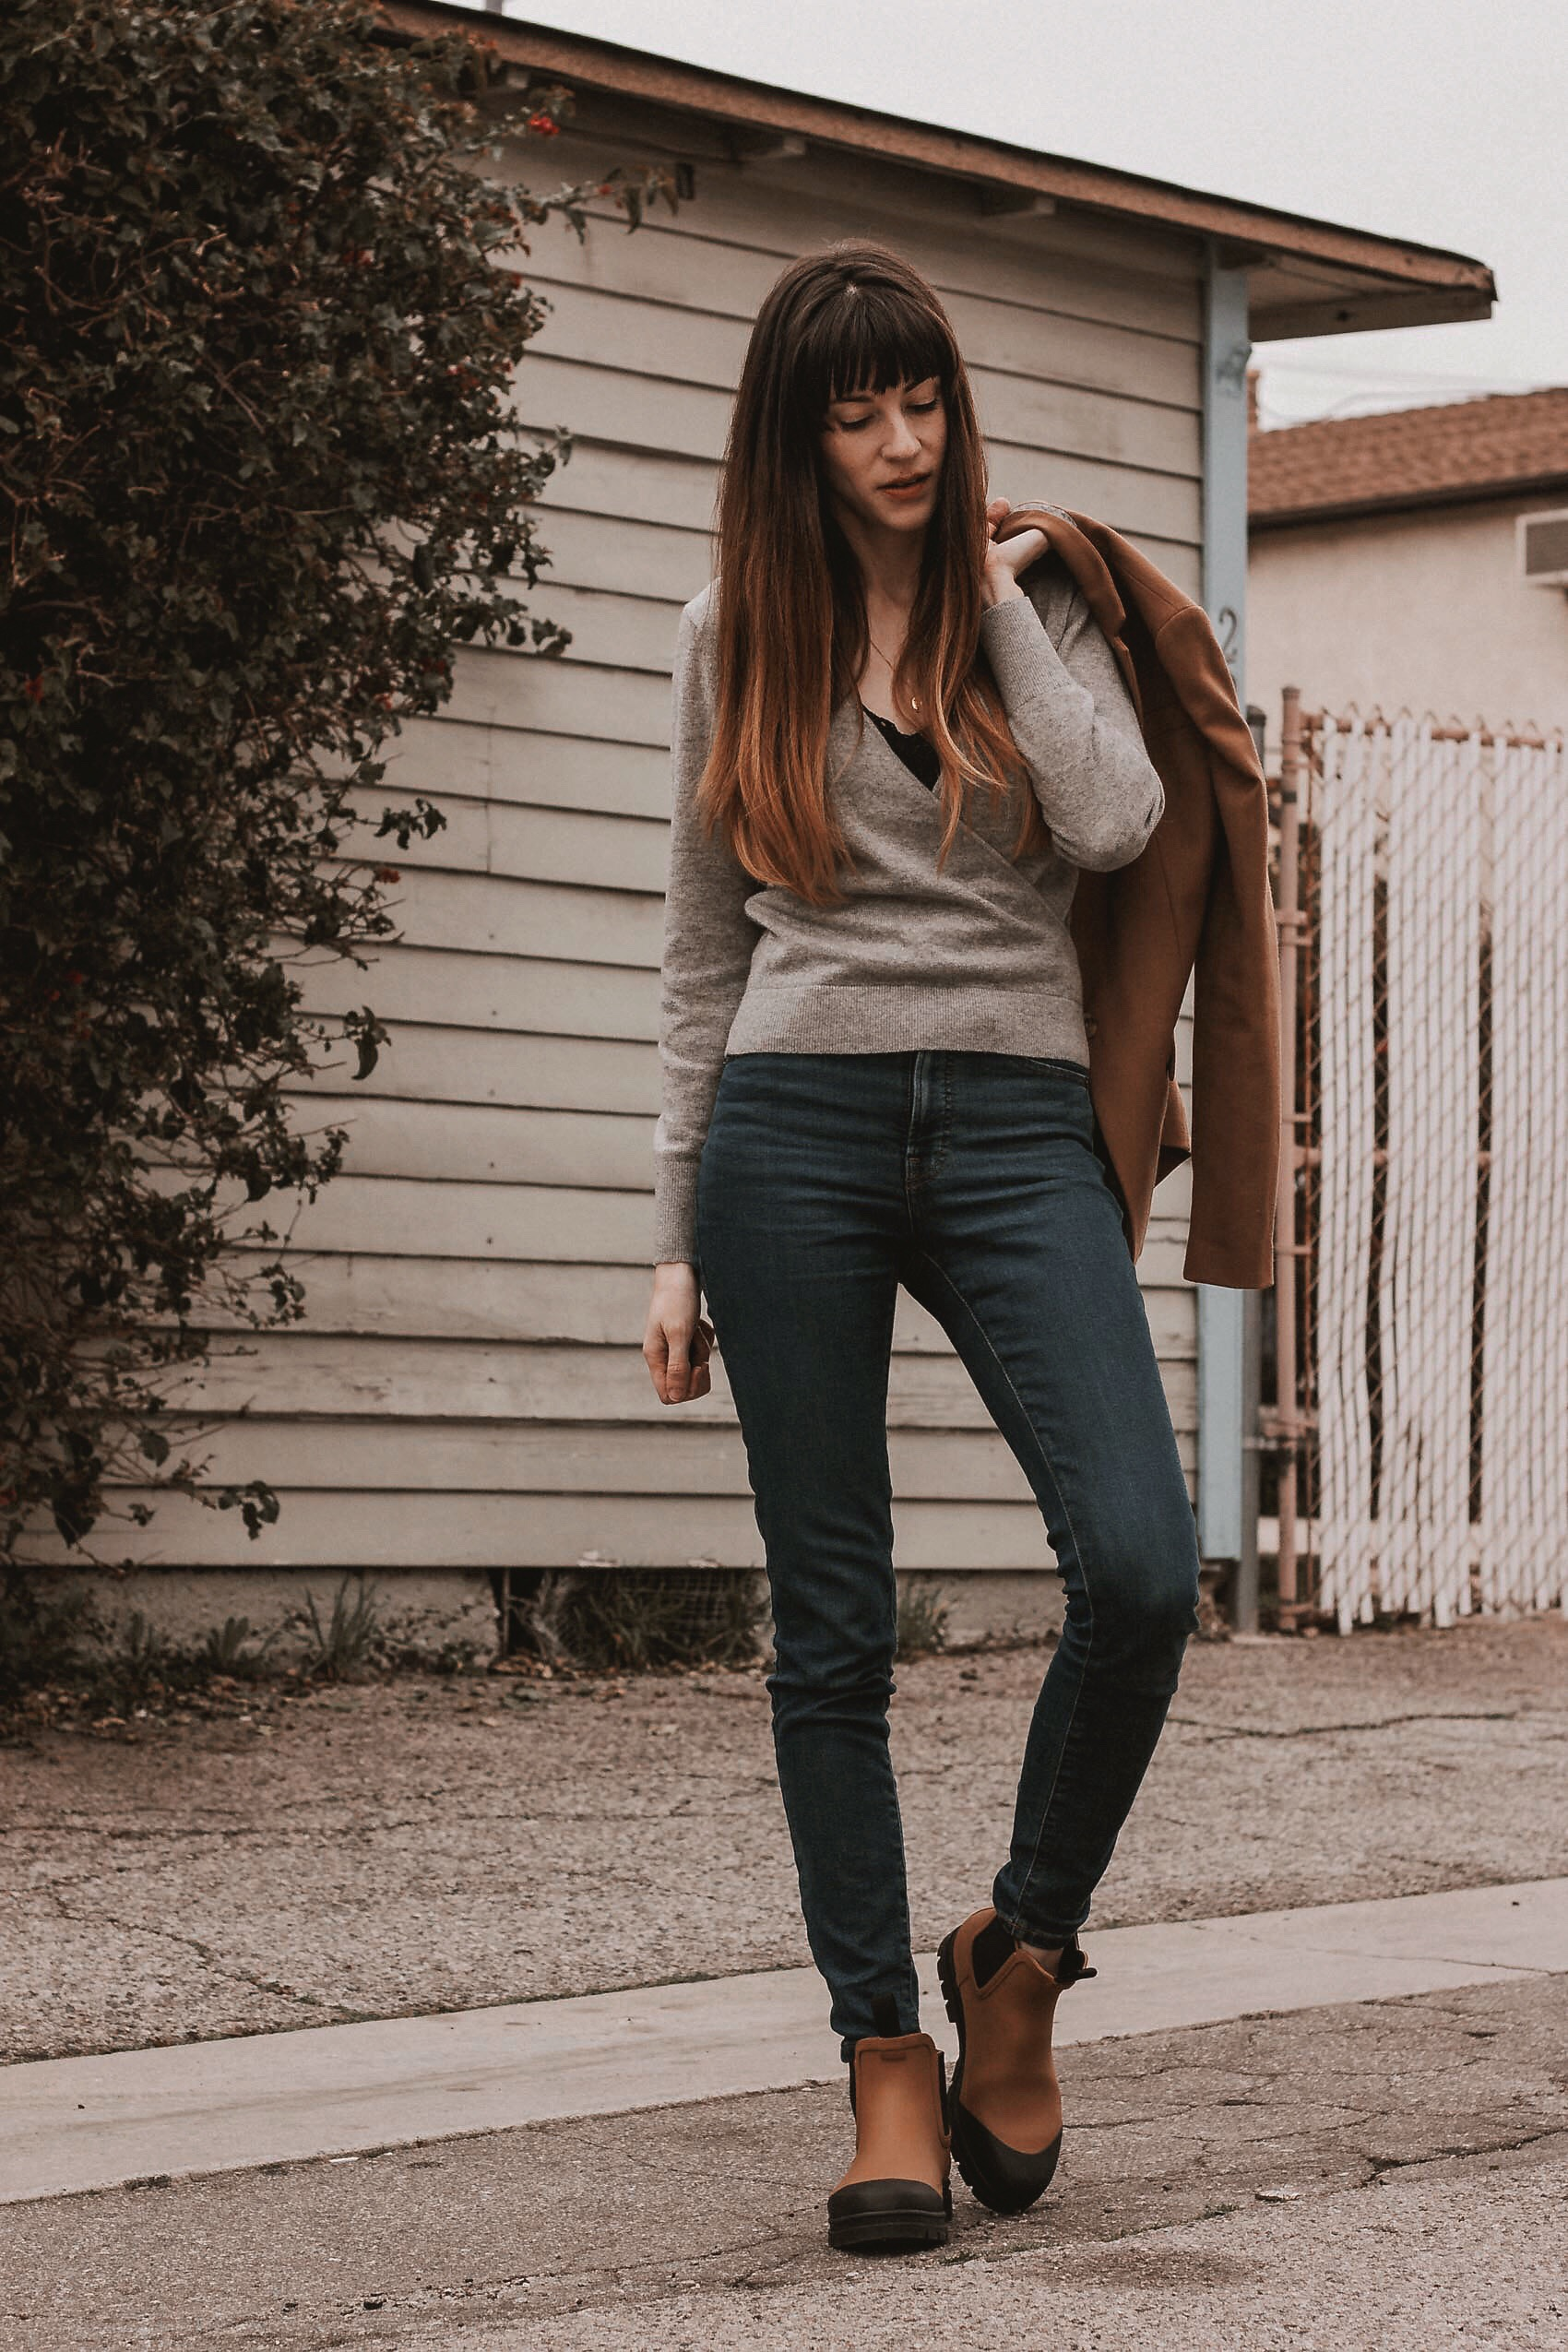 Los Angeles Fashion Blogger sharing How to Style Rain Boots